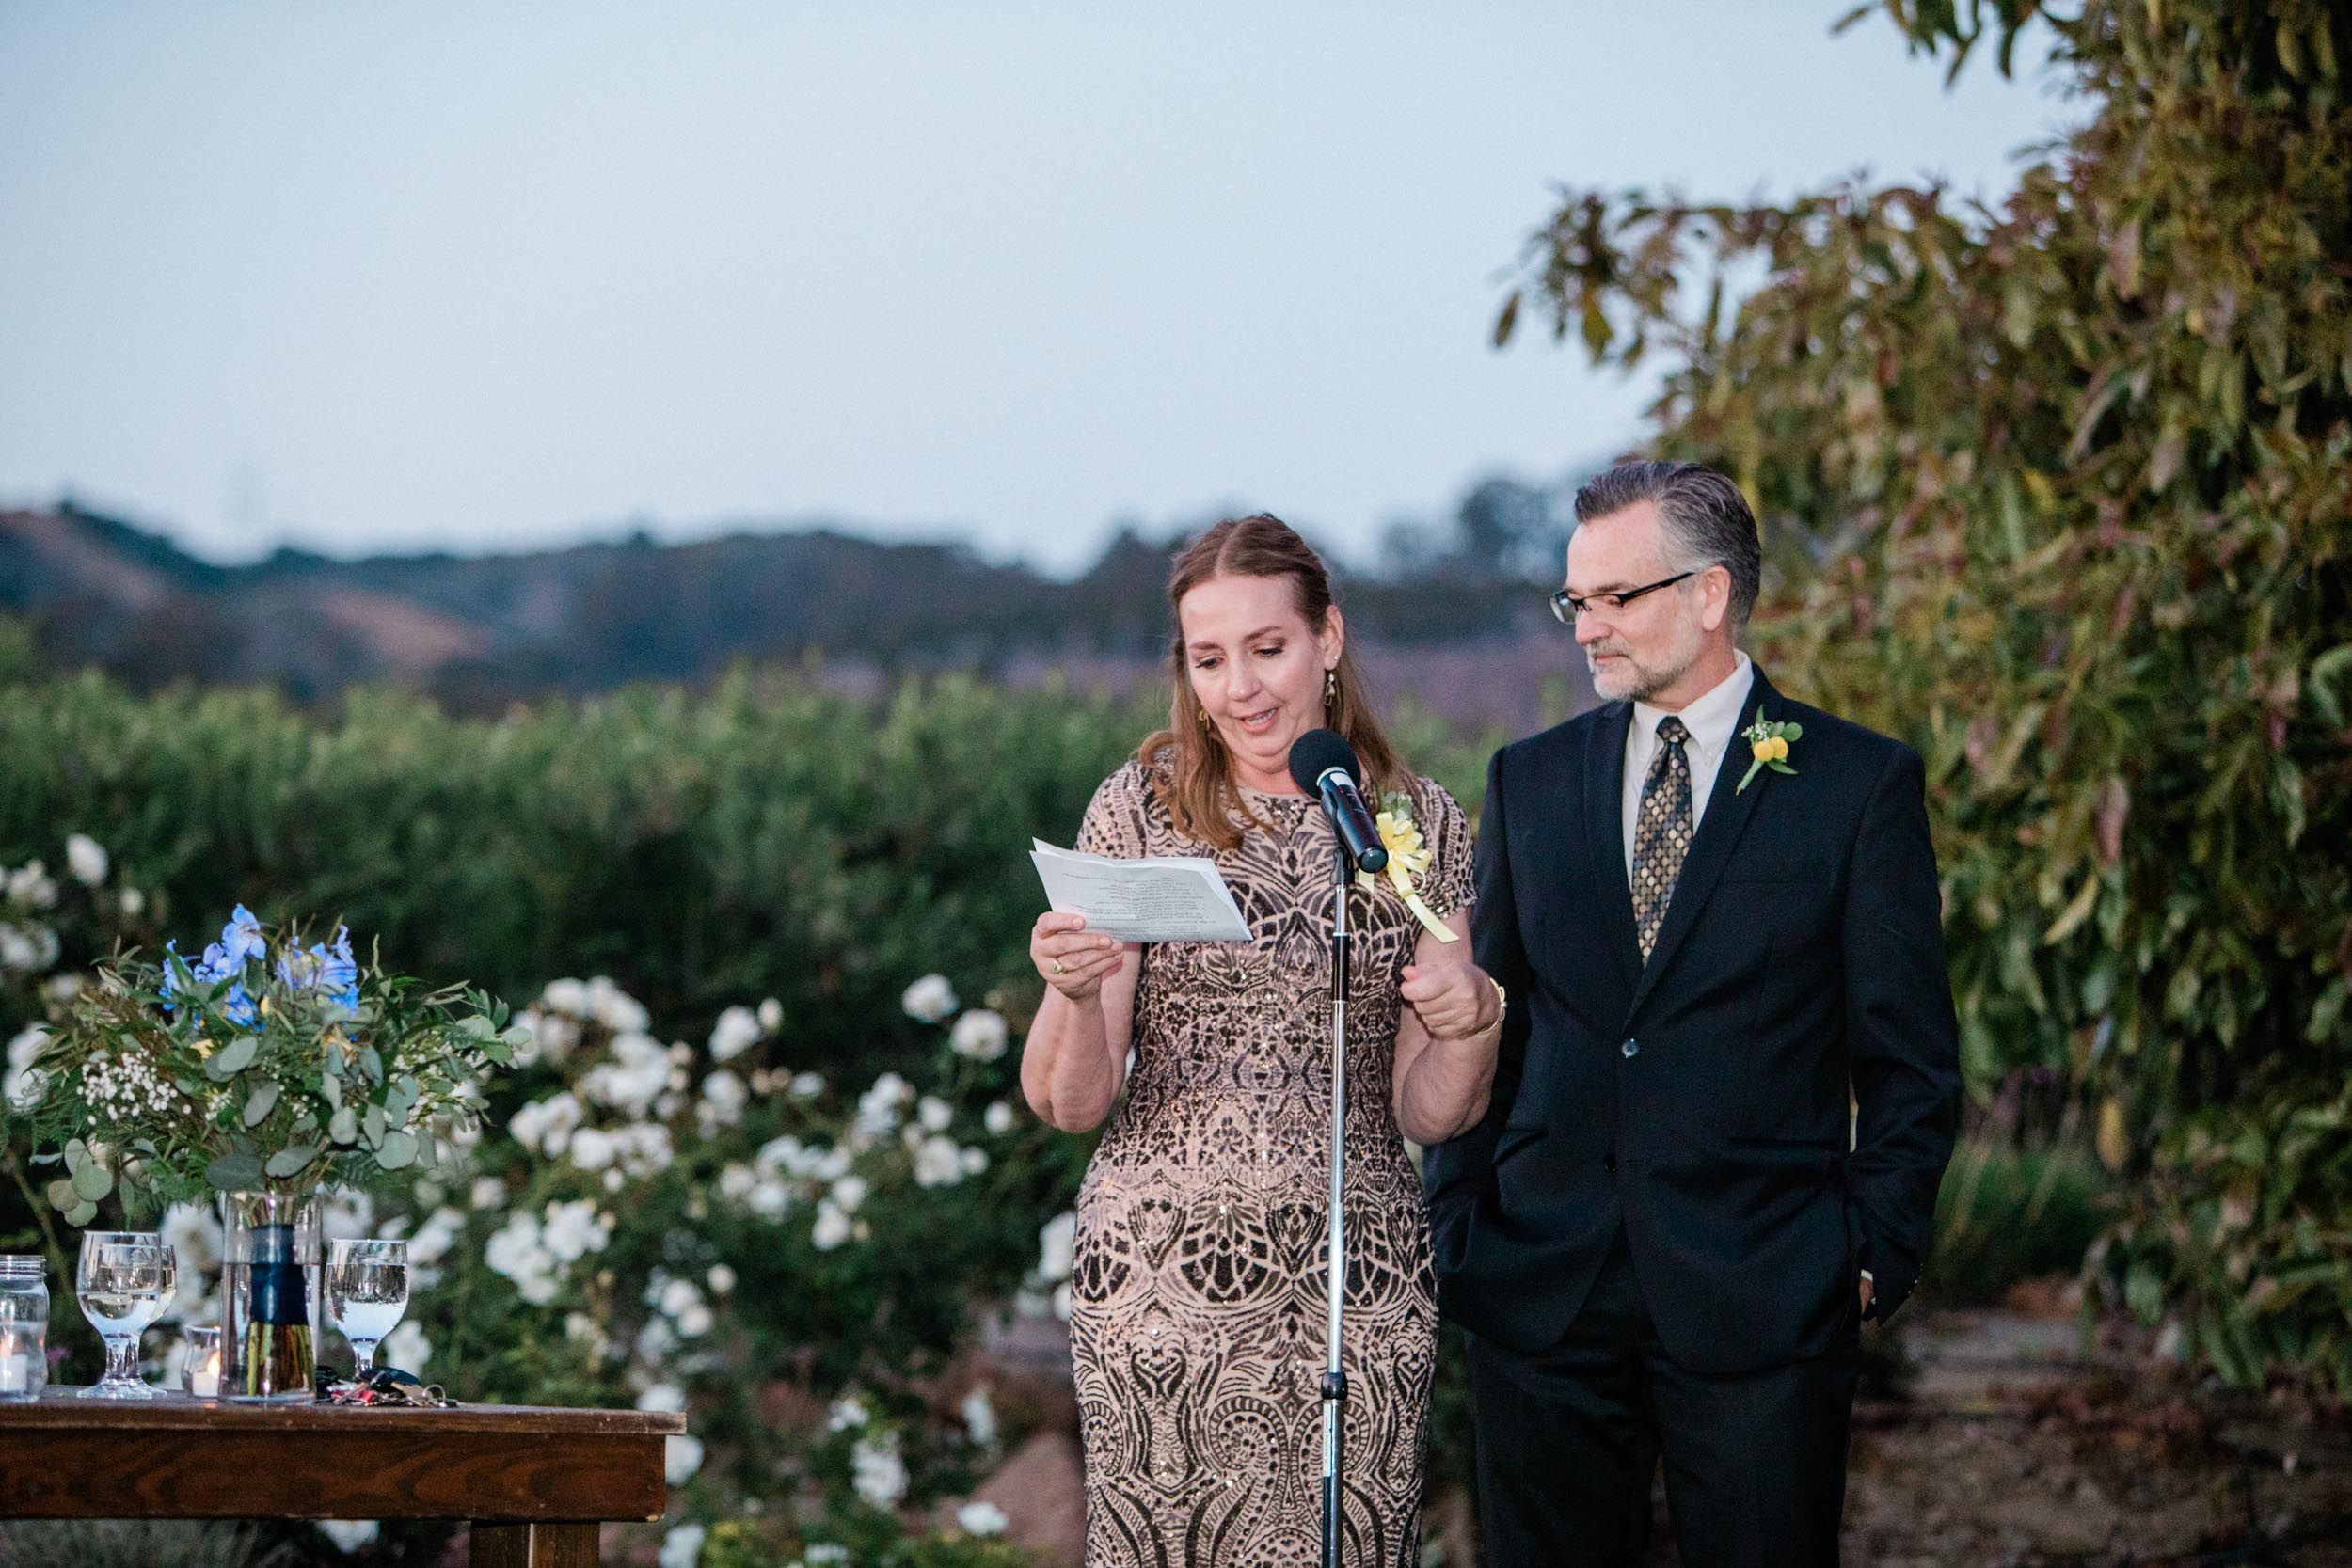 BKM-Photography-Gerry-Ranch-Southern-California-Wedding-0140.jpg